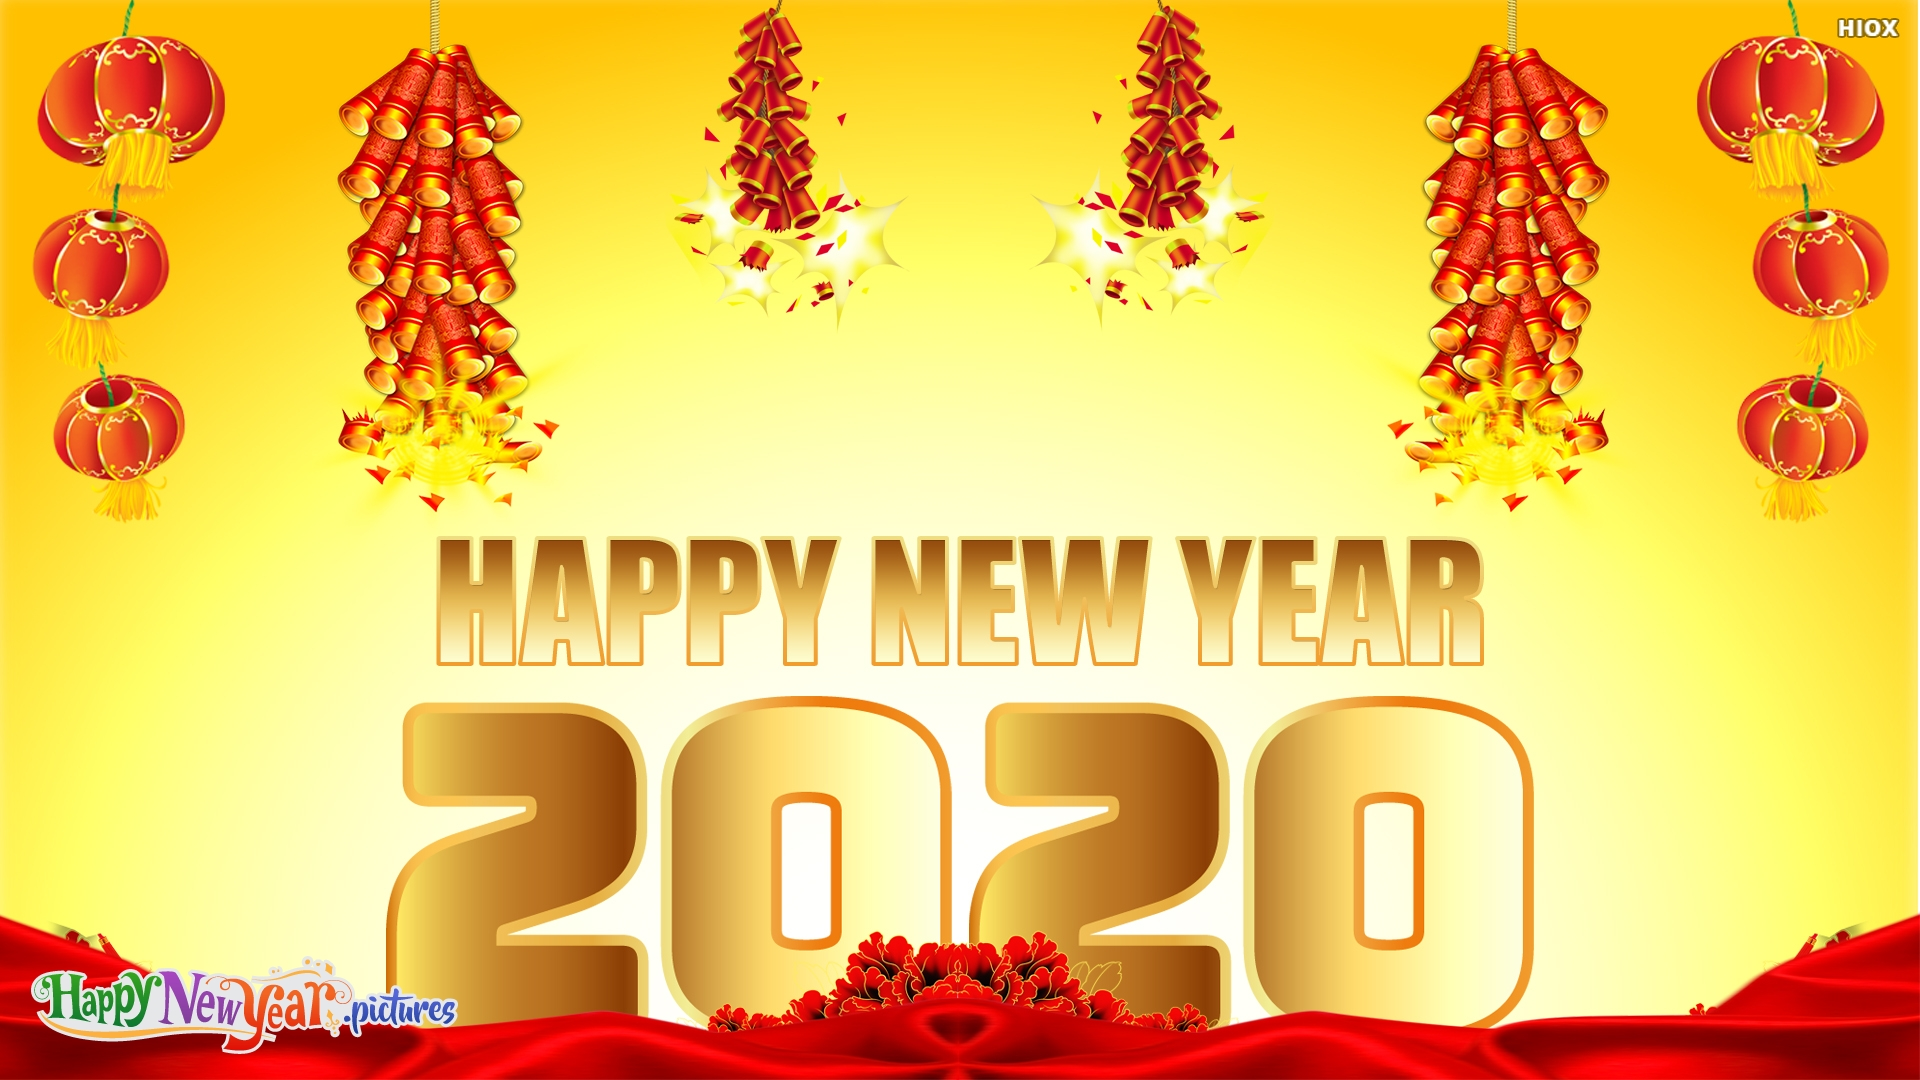 Happy New Year Wishes To Each and Everyone